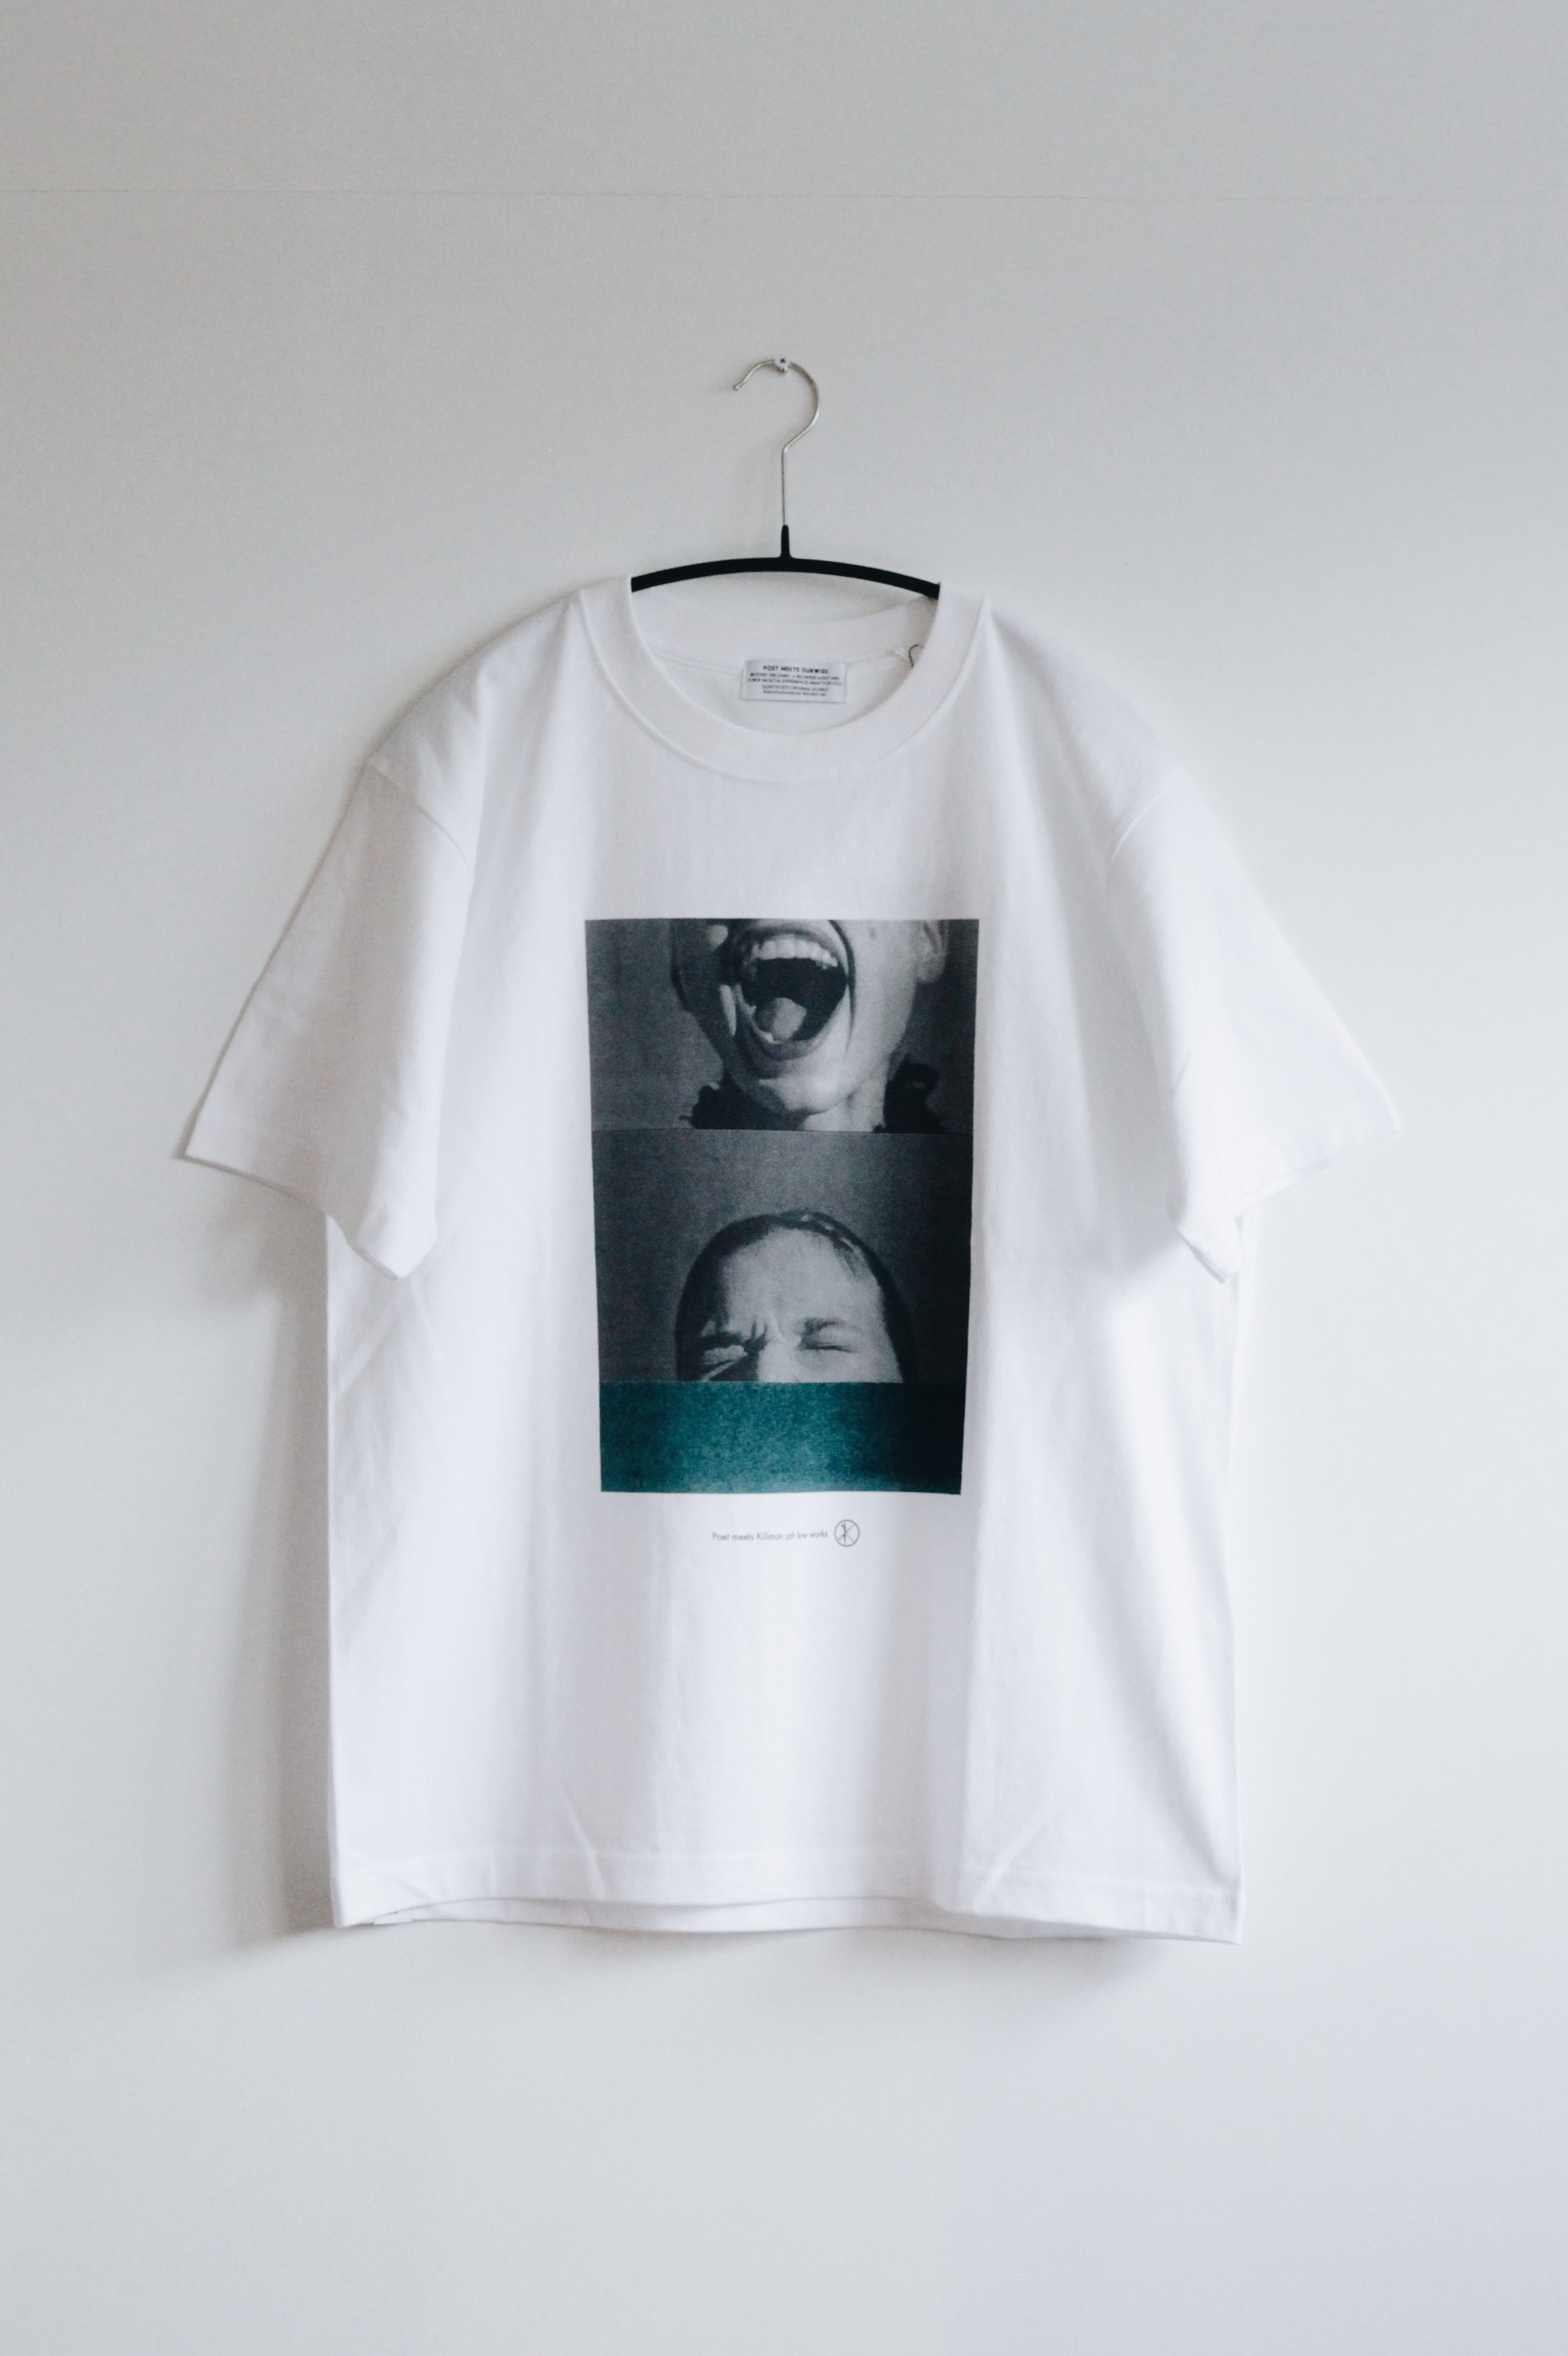 【POET MEETS DUBWISE(ポエトミーツダブワイズ)】× KILLIMAN JAH LOW WORKS COLLAGE 1 TEE